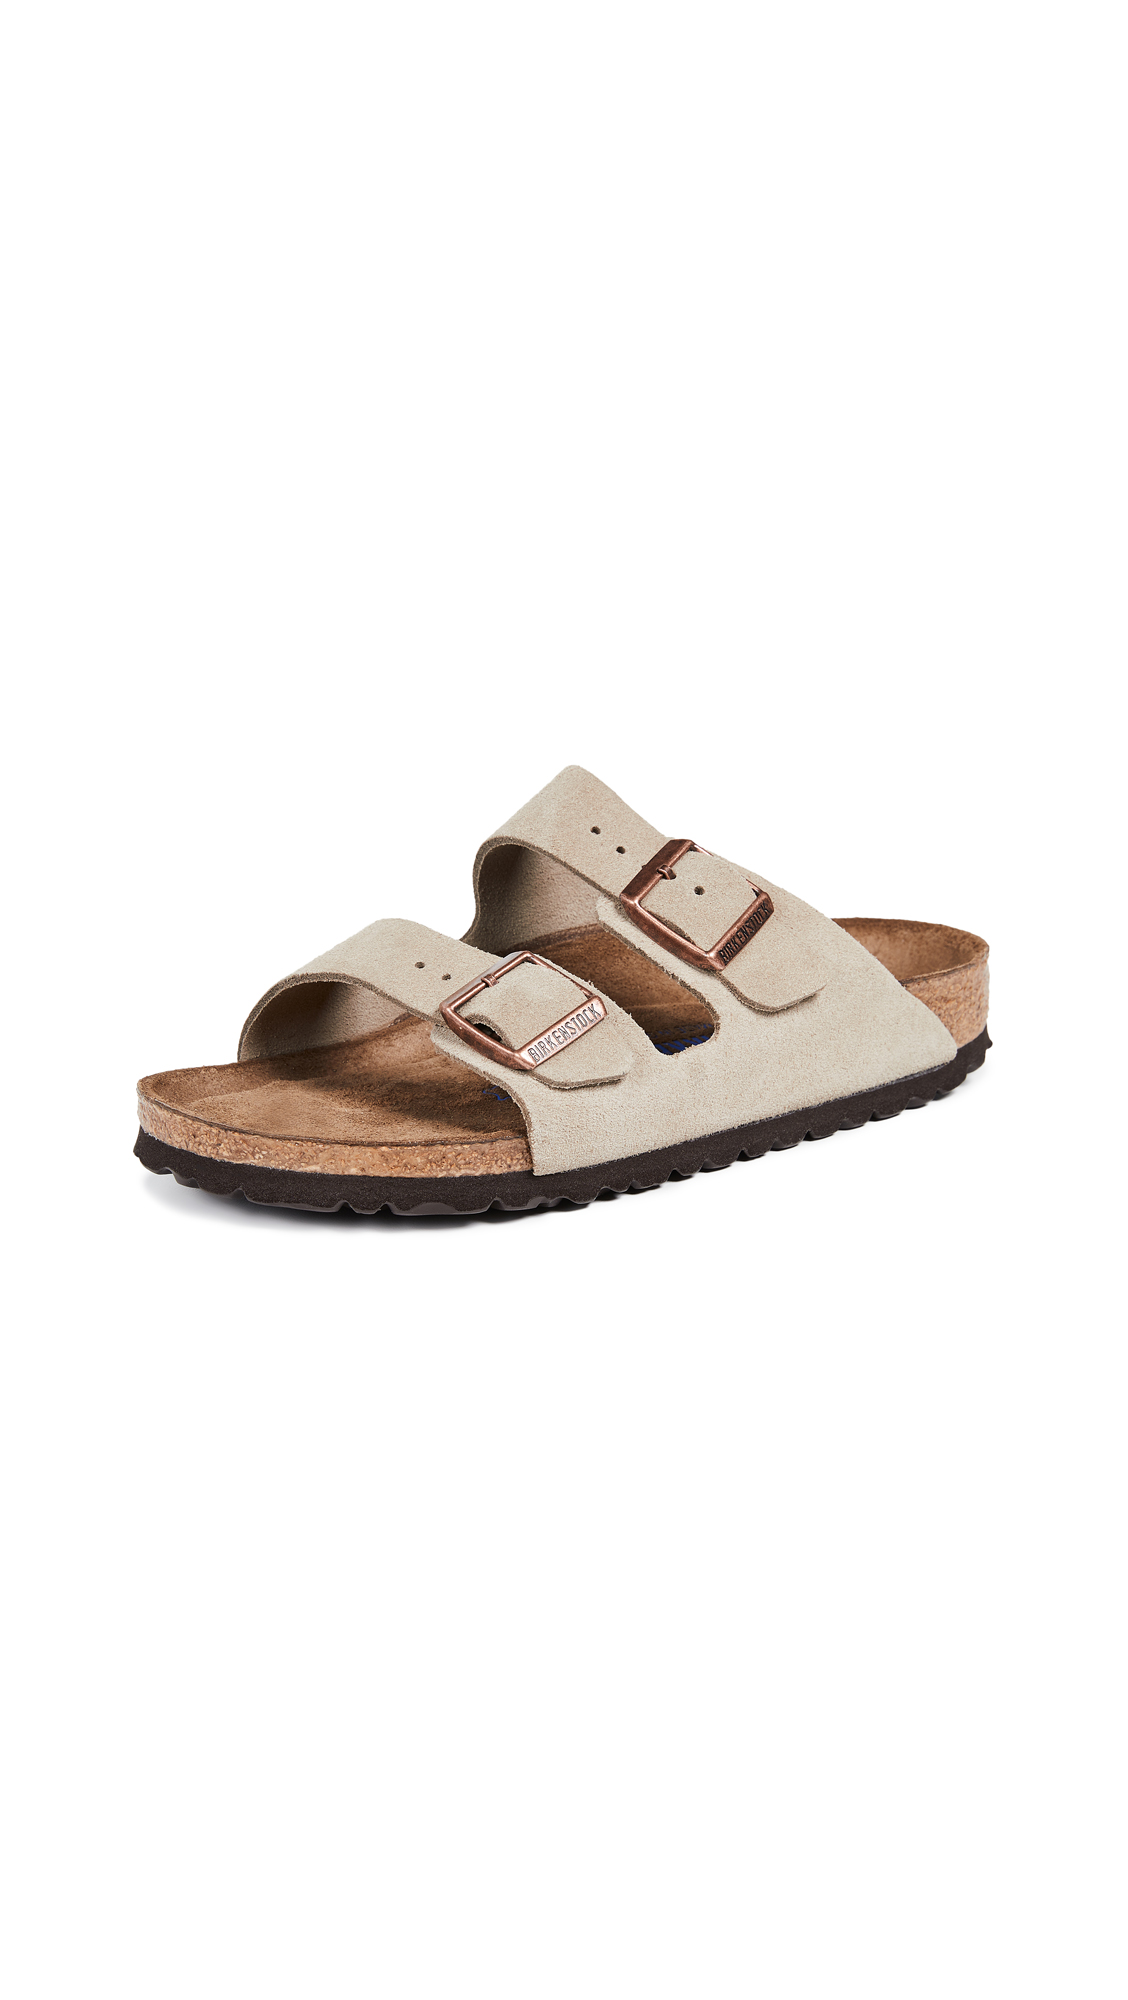 Birkenstock Arizona SFB Sandals - Taupe